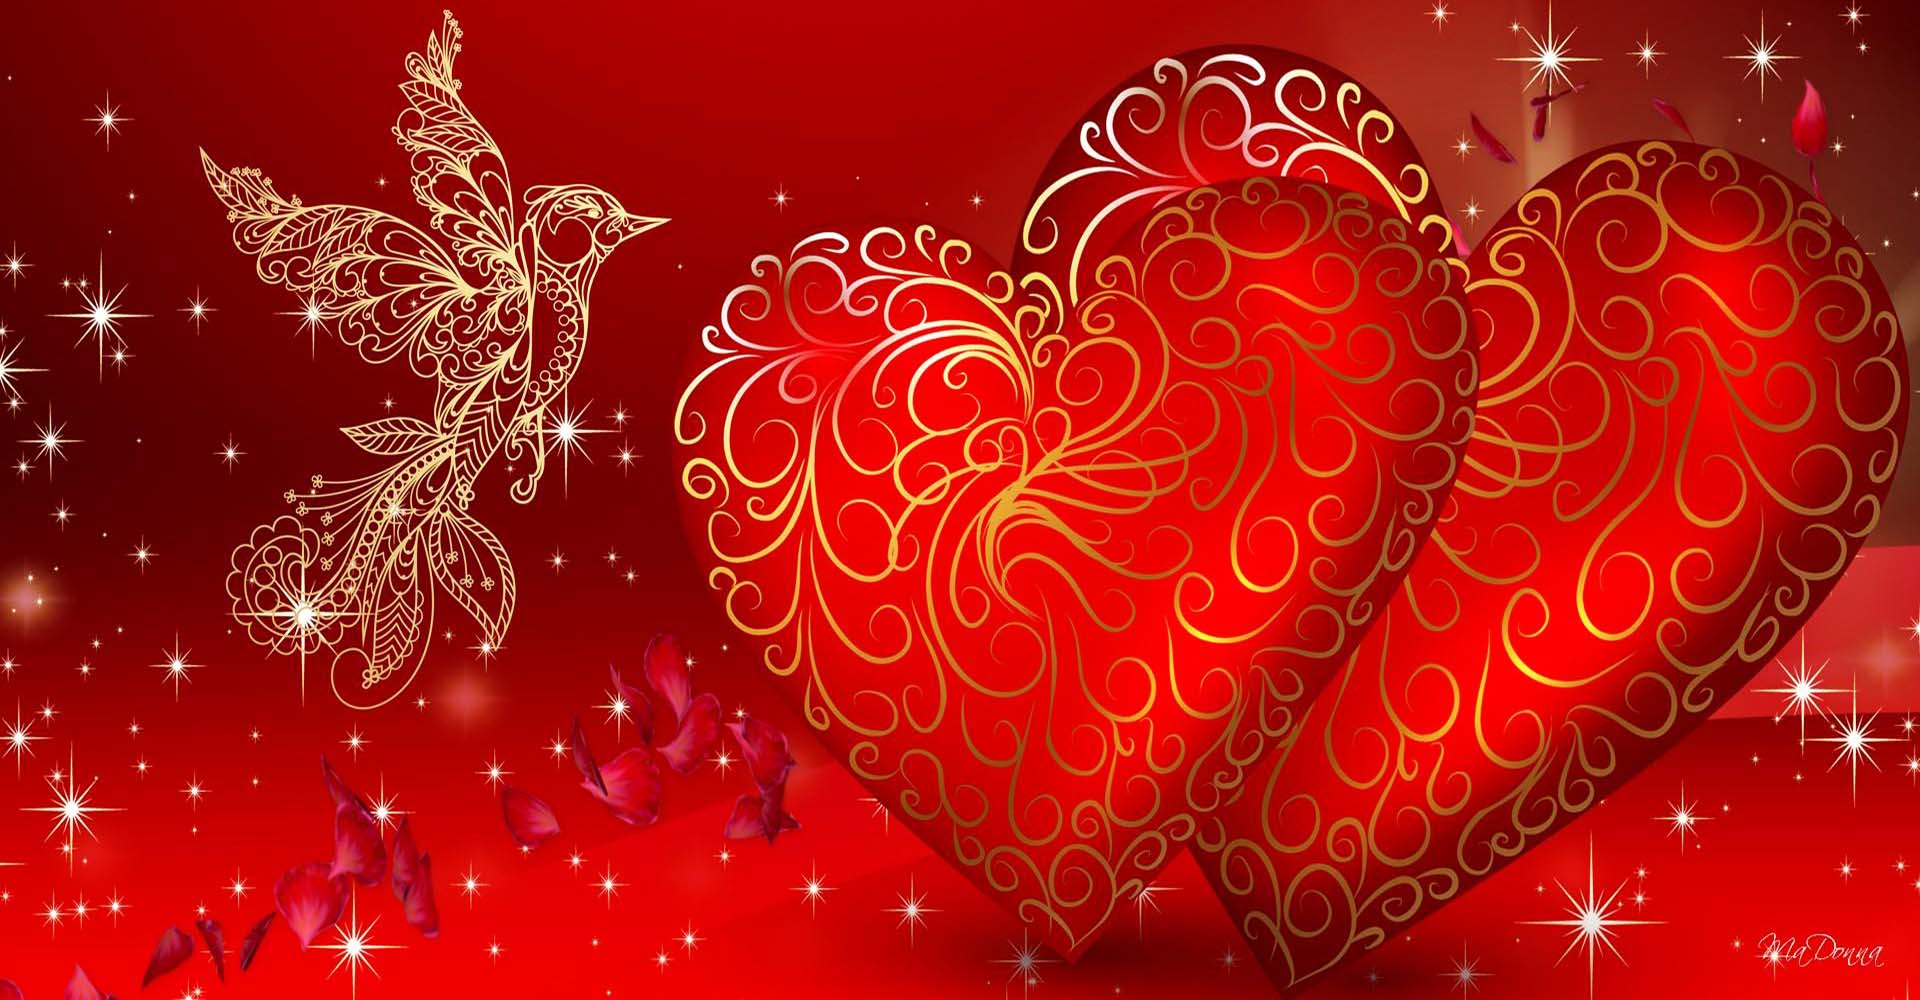 Wallpaper Love Name A : Love Heart Wallpapers 2016 - Wallpaper cave